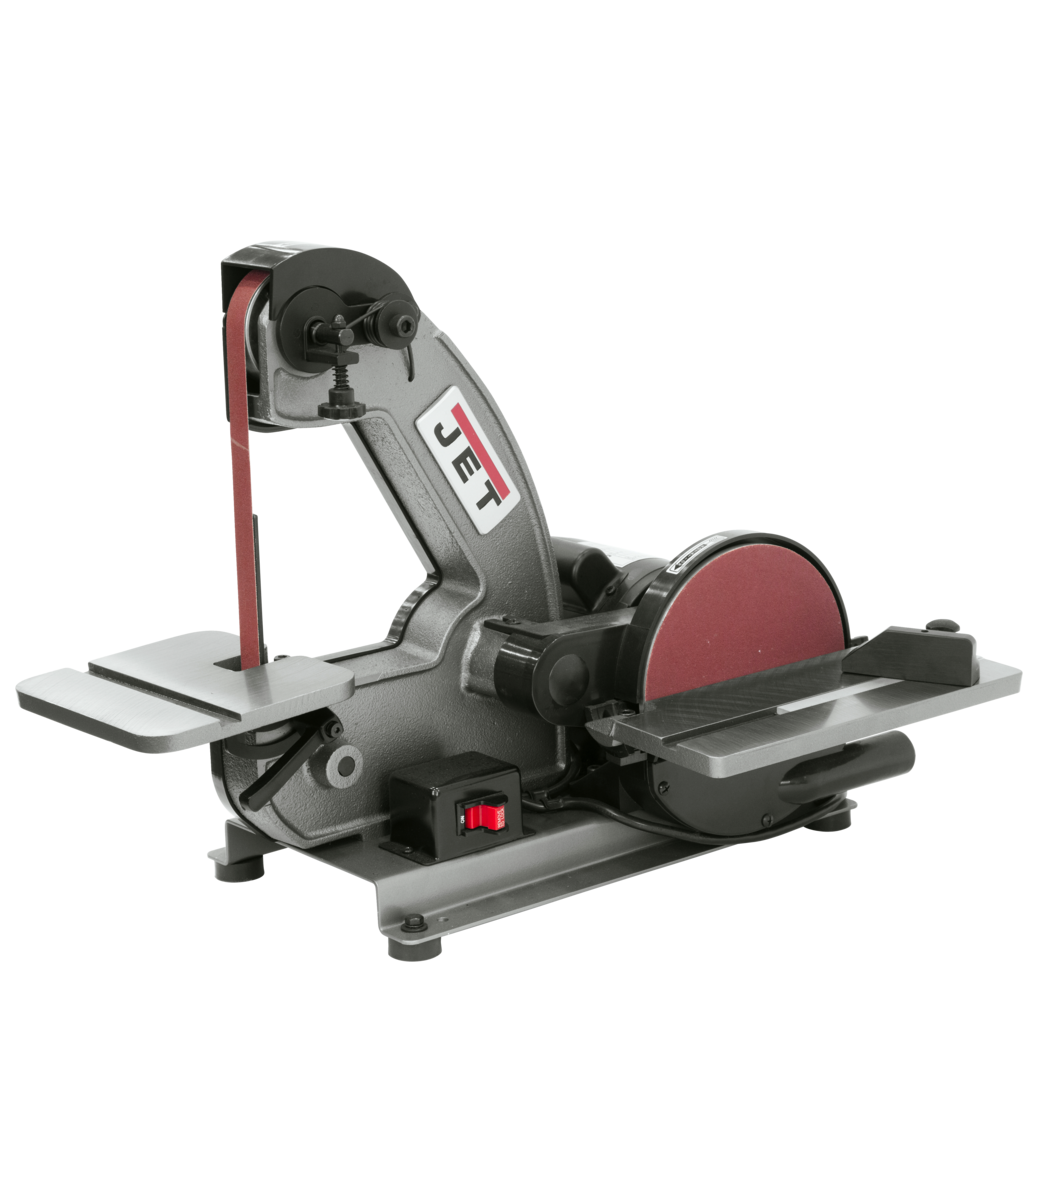 J-4002 1 x 42 Bench Belt and Disc Sander